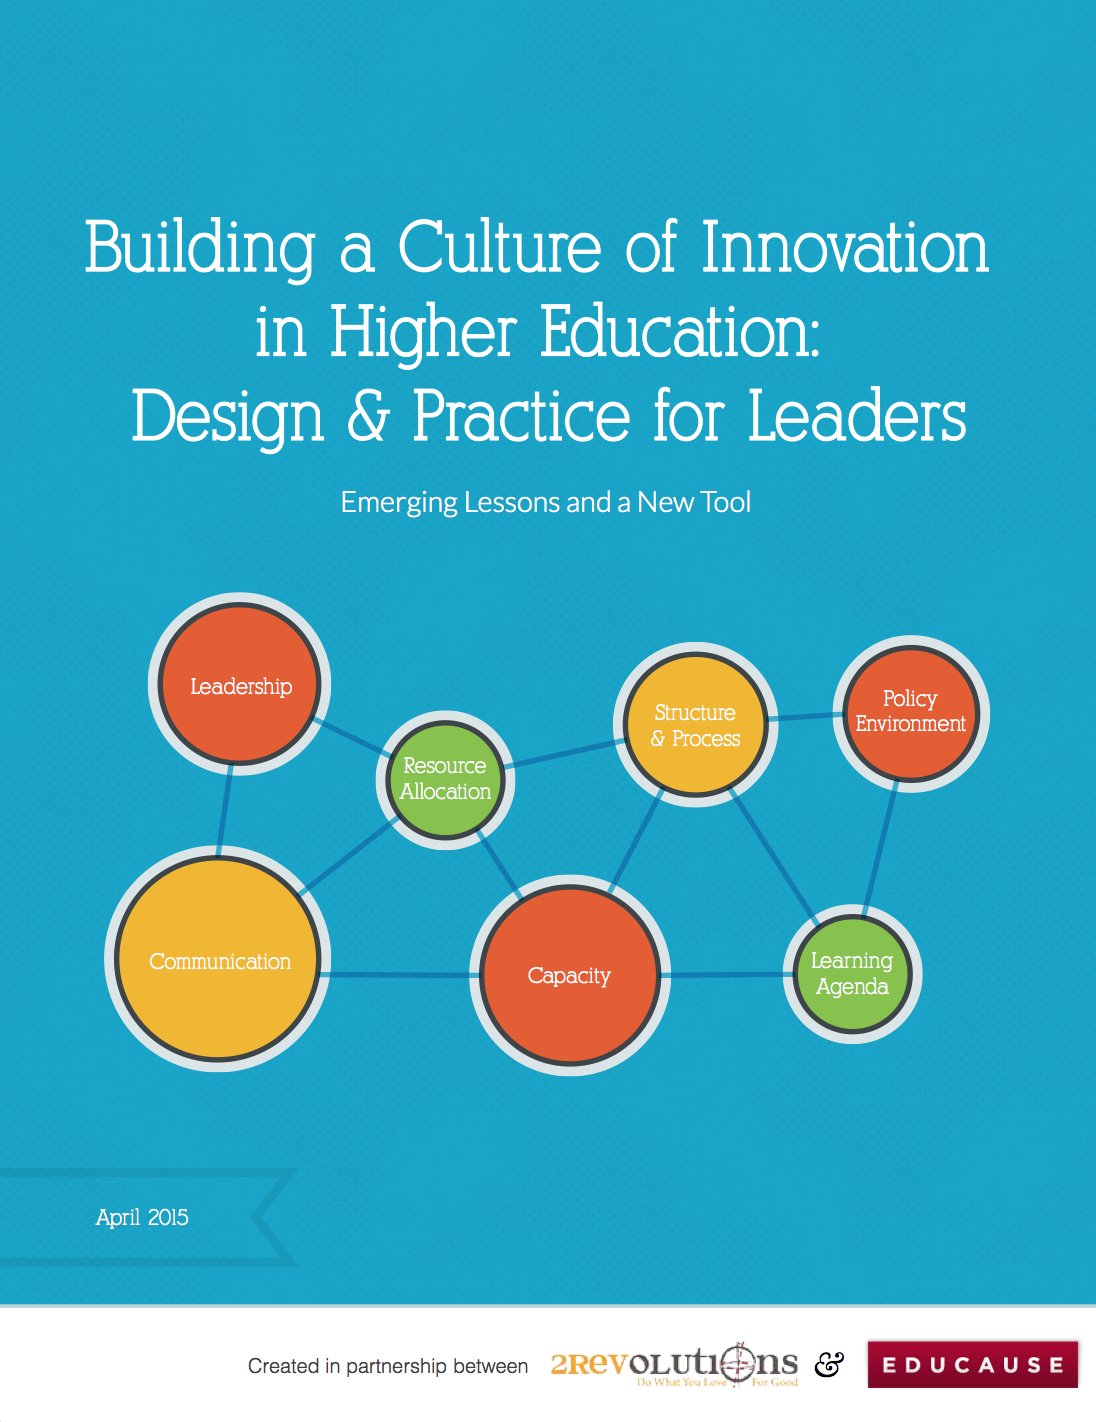 building a culture of innovation in higher education, april 2015